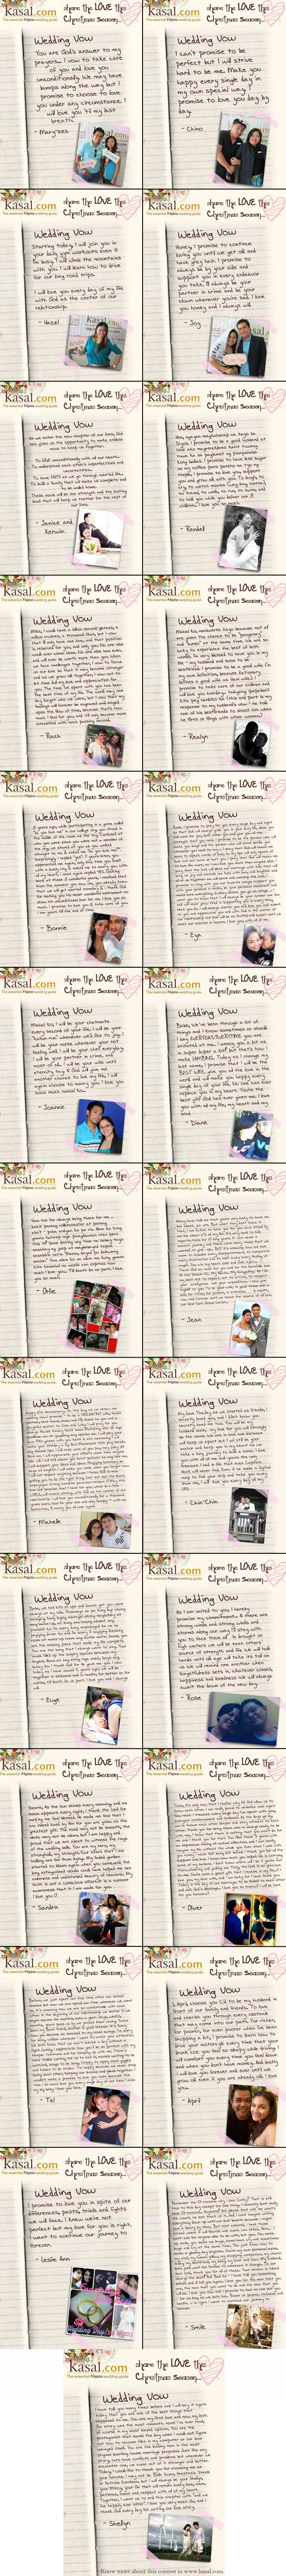 Wedding Vow Contest Entries